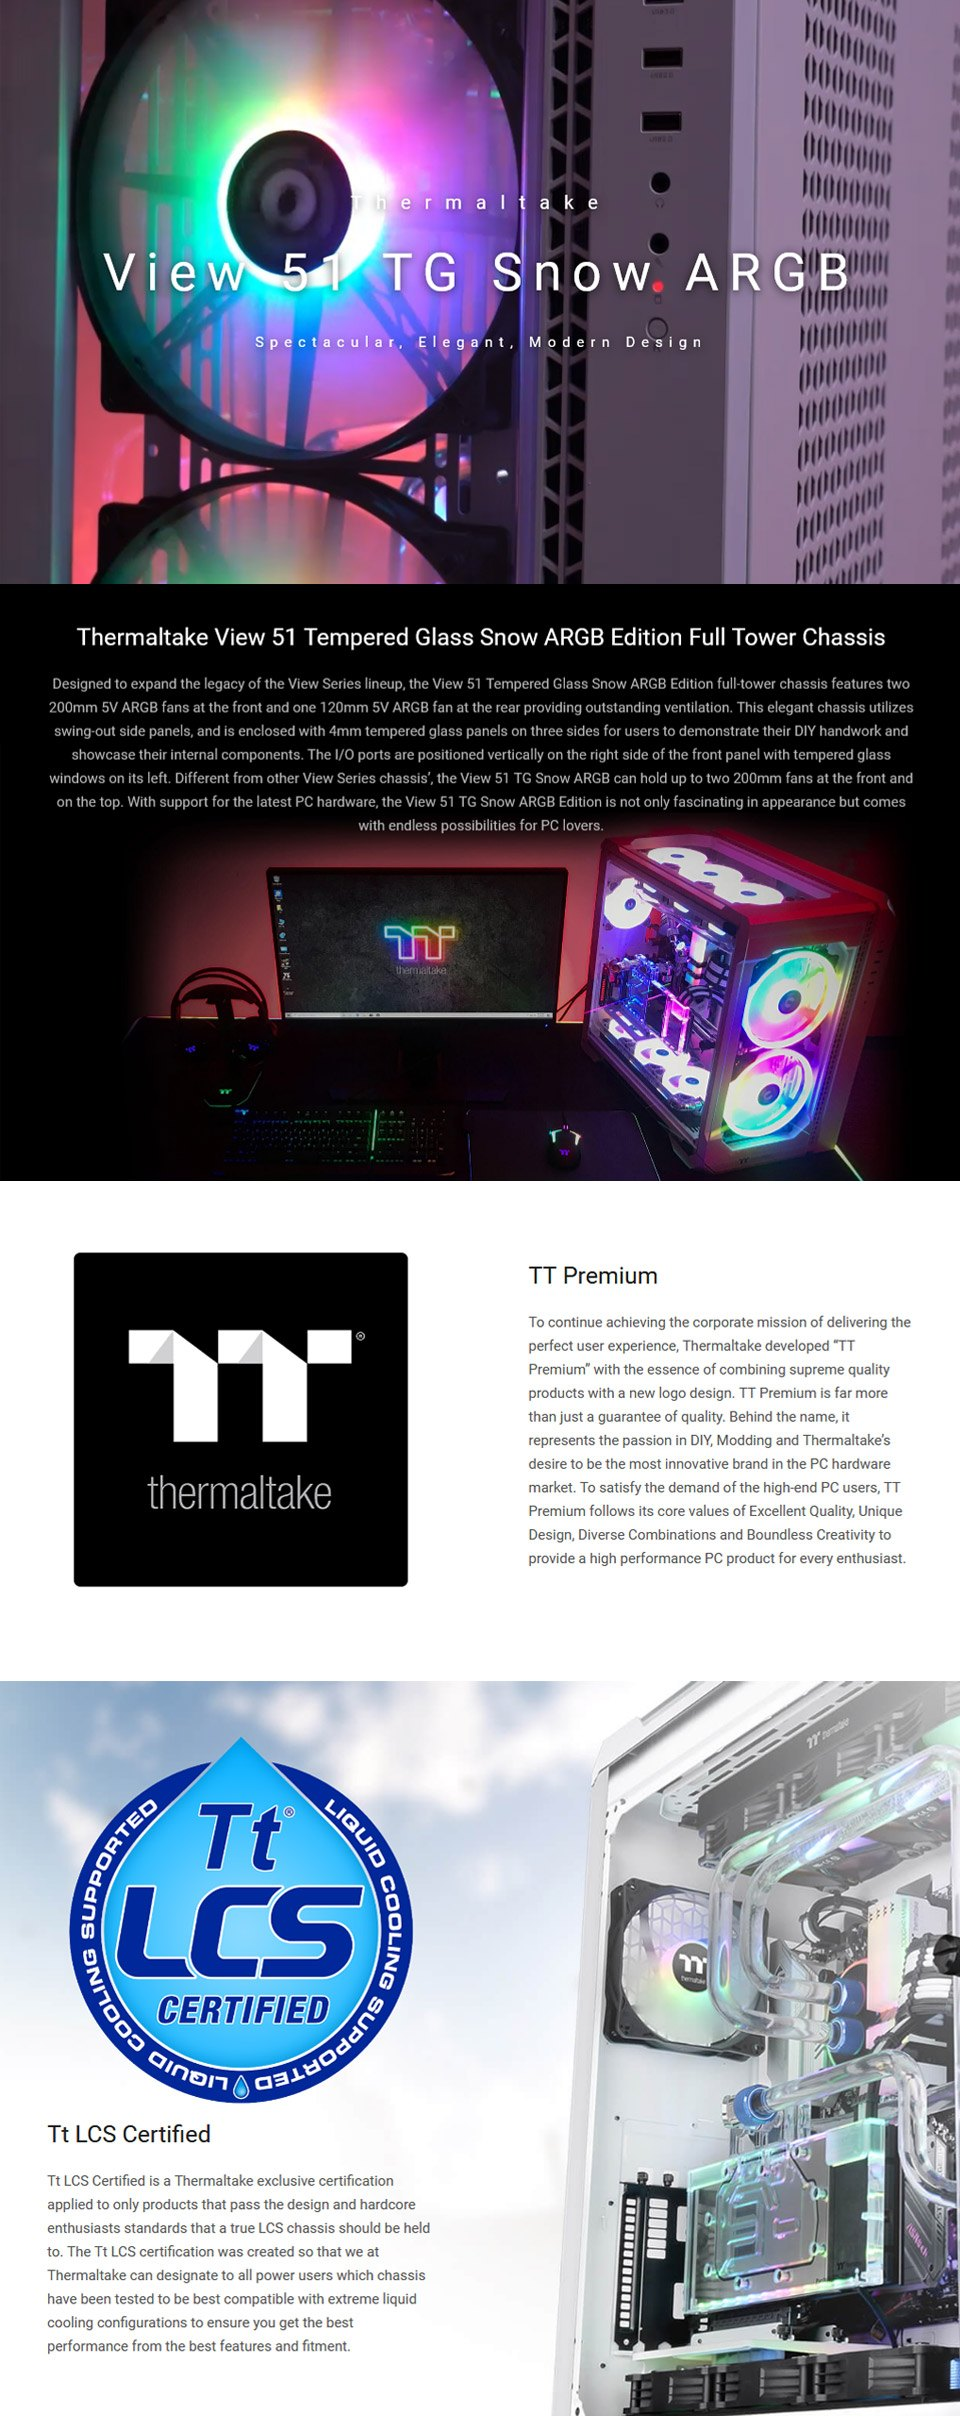 Thermaltake View 51 A-RGB Tempered Glass Case White features